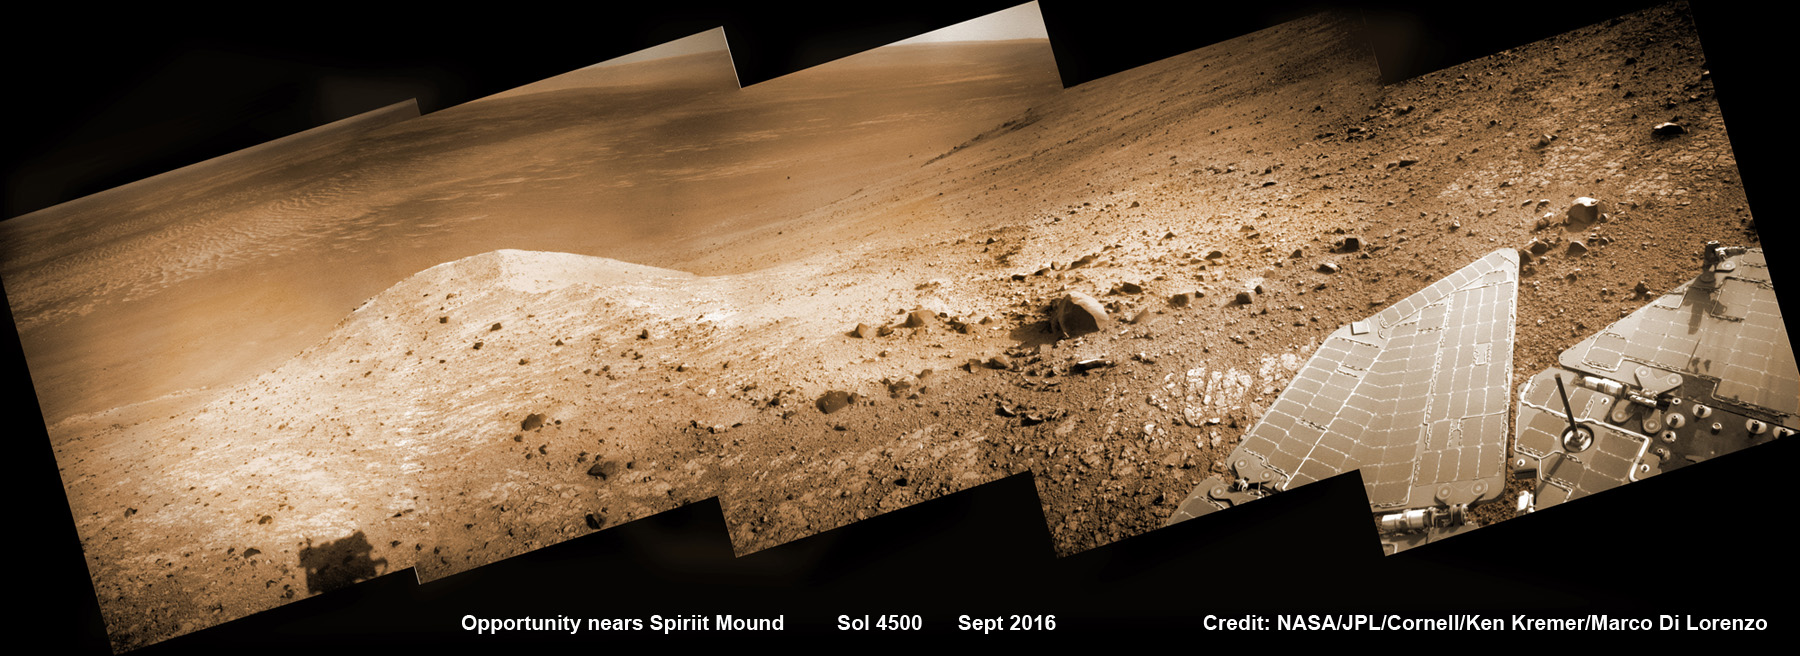 NASA's Opportunity rover scans ahead to Spirit Mound and vast Endeavour crater as she celebrates 4500 sols on the Red Planet after descending down Marathon Valley. This navcam camera photo mosaic was assembled from raw images taken on Sol 4500 (20 Sept 2016) and colorized. Credit: NASA/JPL/Cornell/ Ken Kremer/kenkremer.com/Marco Di Lorenzo